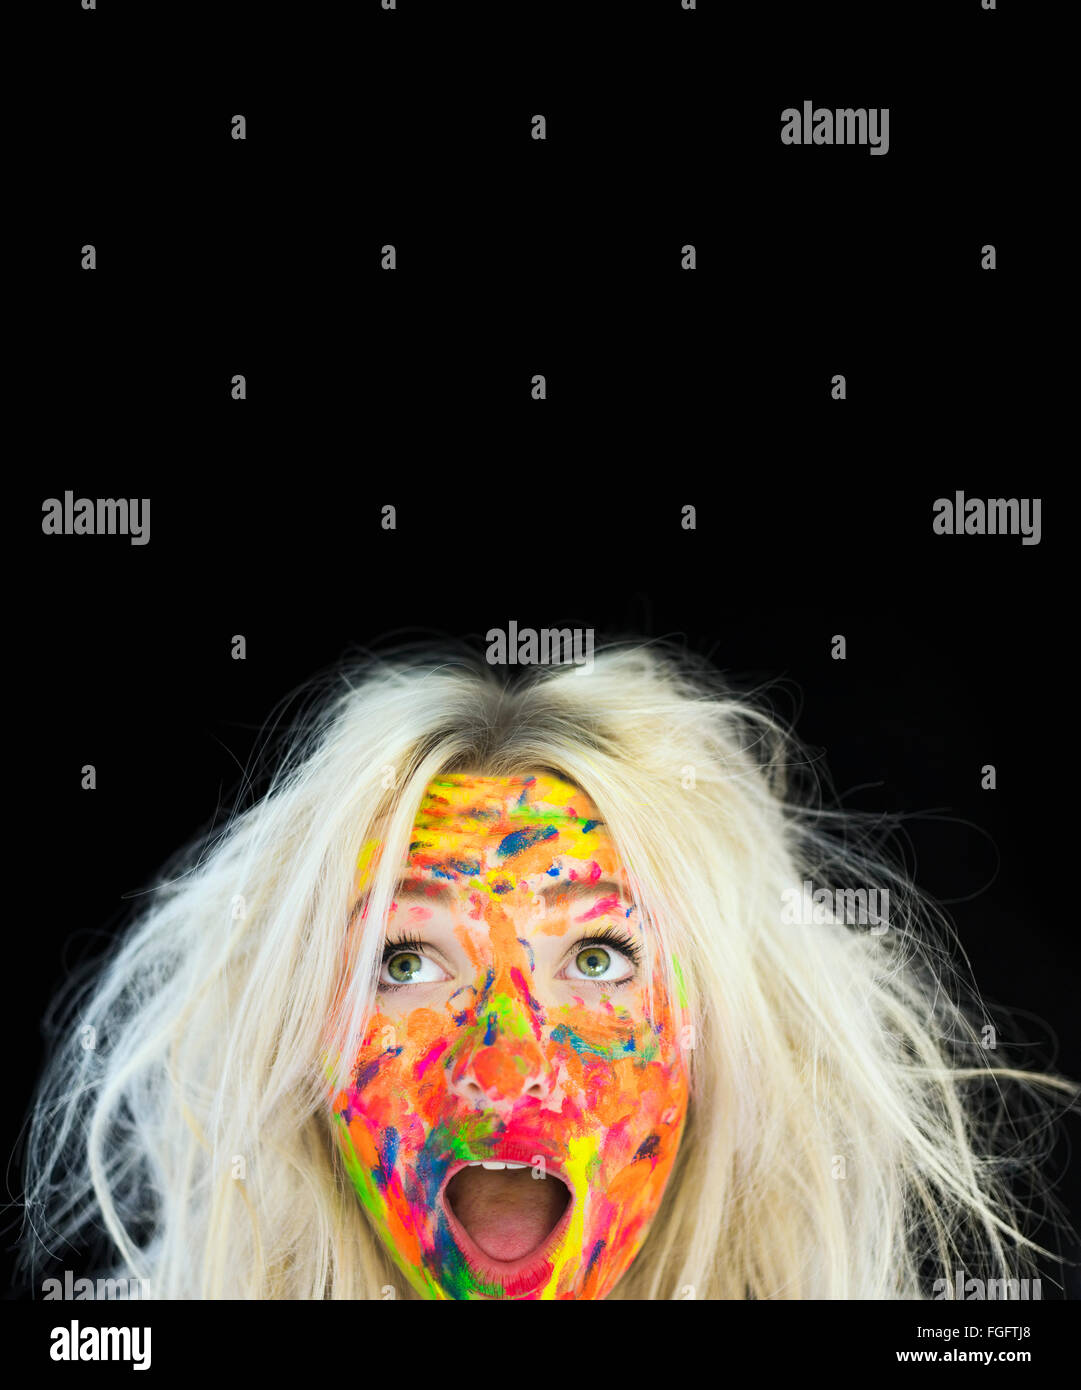 Woman with messy blonde hair and face covered in multi coloured paint with a surprised expression Stock Photo